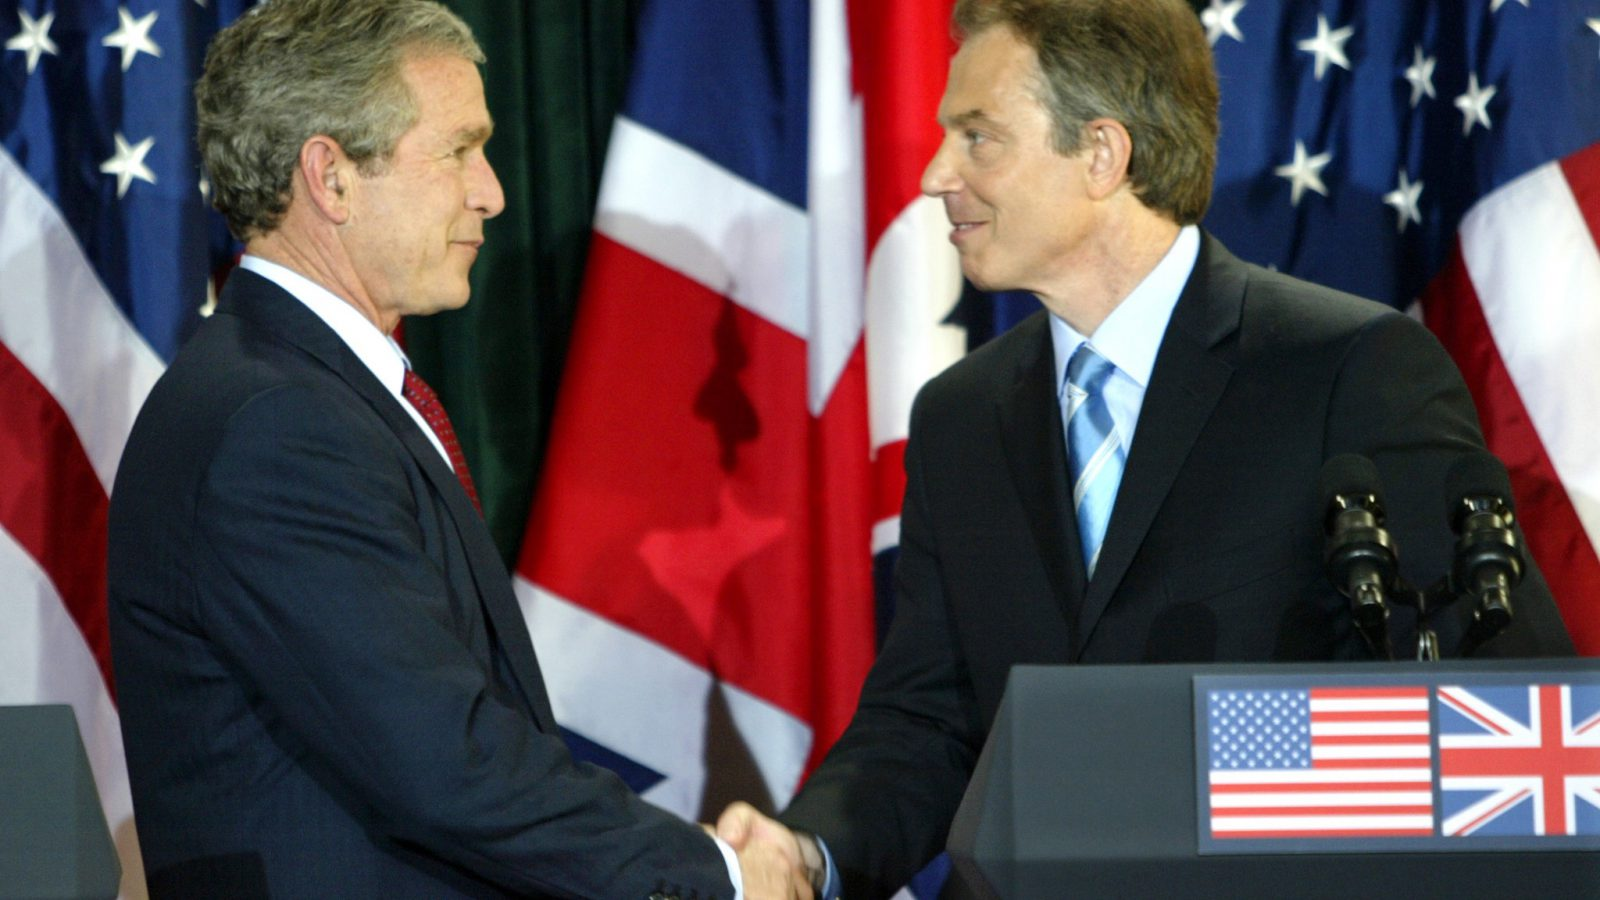 President George W. Bush and British Prime Minister Tony Blair shake hands after a joint press conference following their meeting at Hillsborough Castle near Belfast April 8, 2003. Picture taken April 8, 2003. REUTERS/Kevin Lamarque/File Photo - RTX2JUNZ